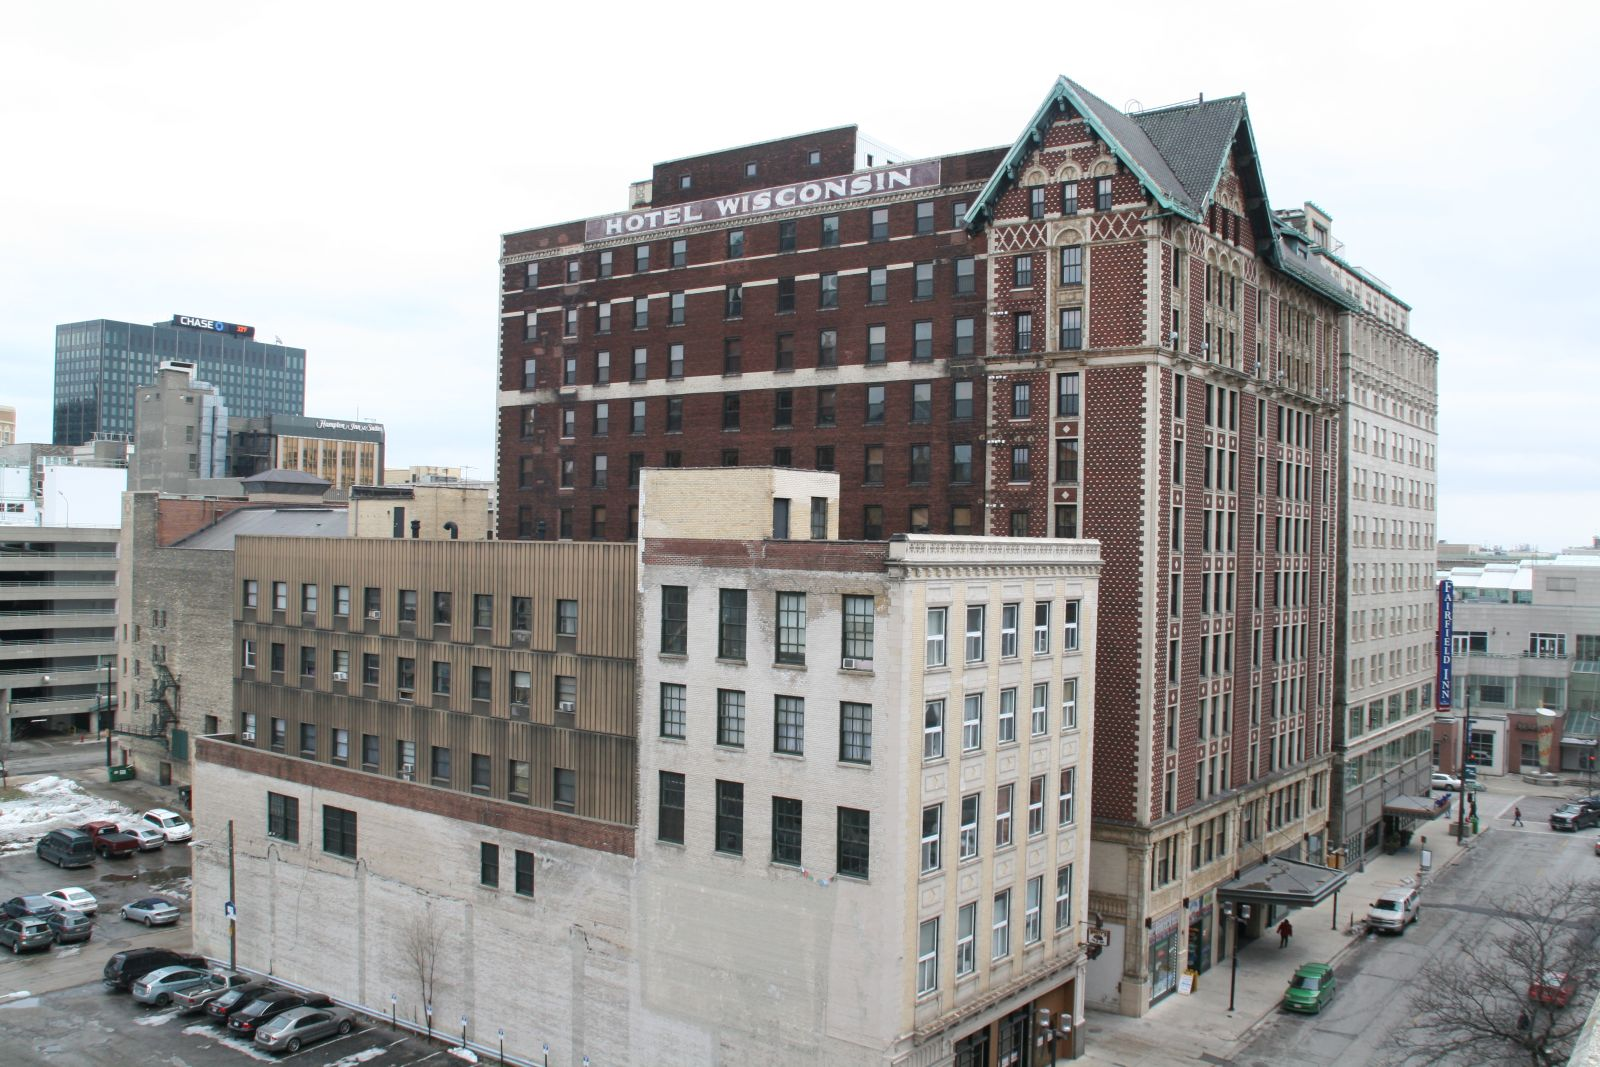 730 N. Old World Third St. and Hotel Wisconsin